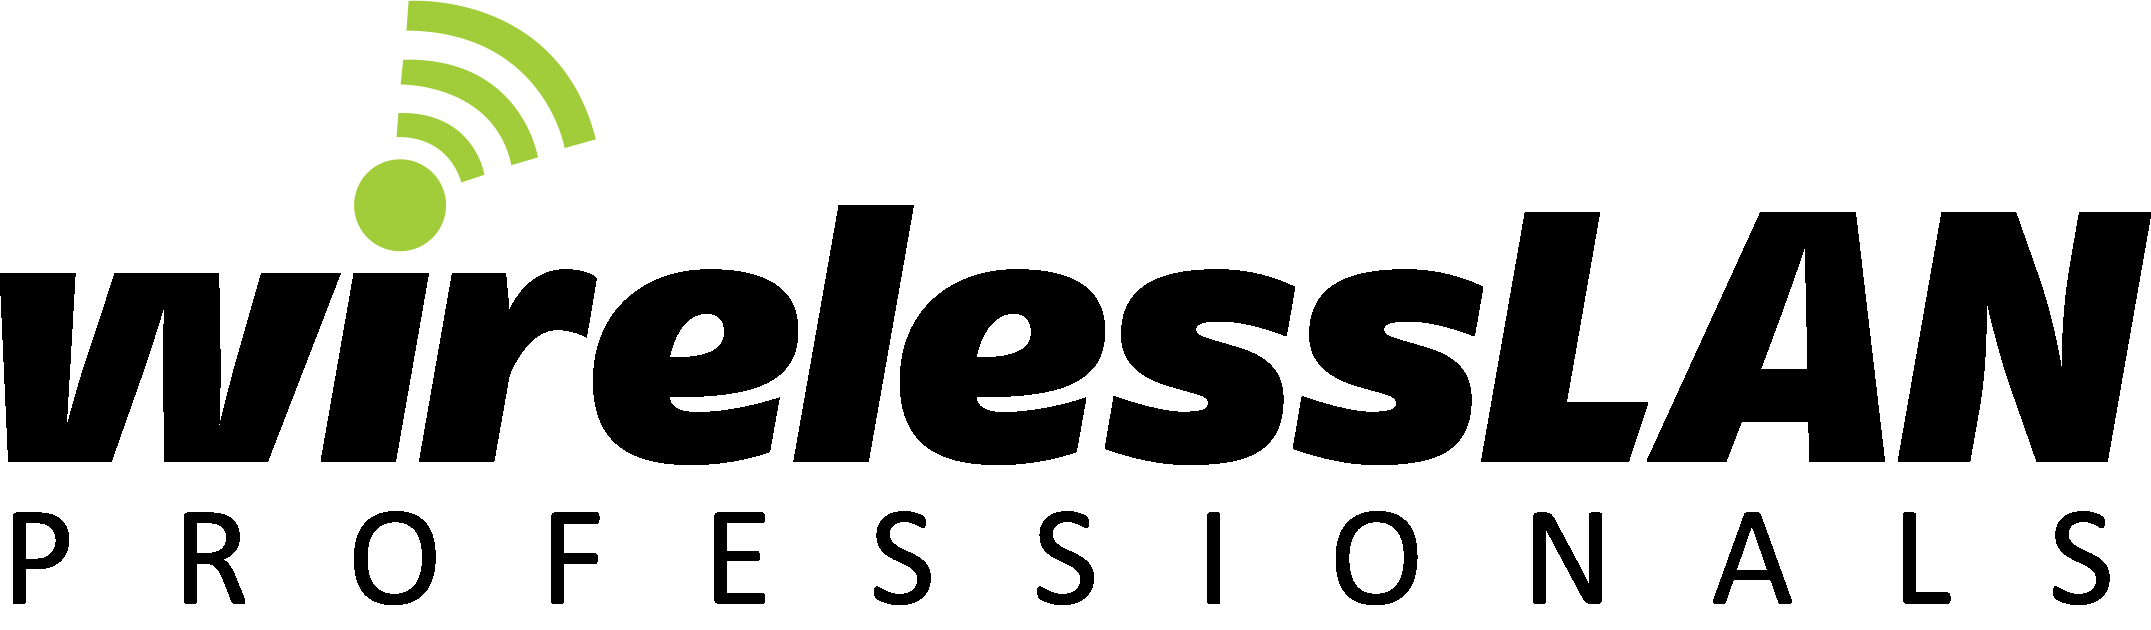 Wireless LAN Professionals